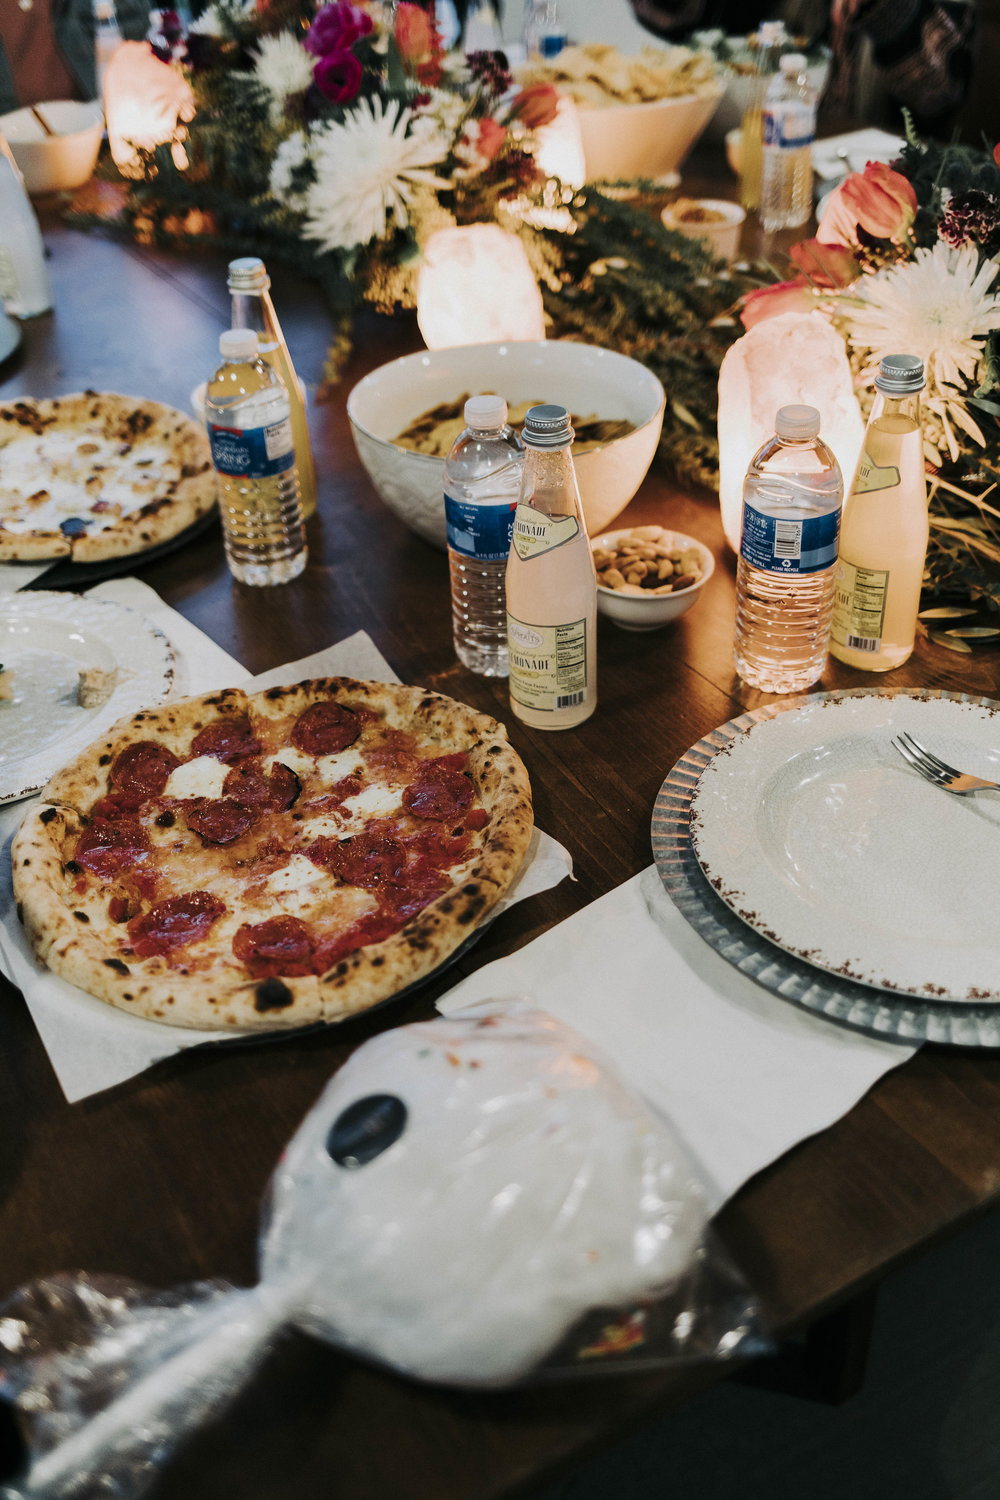 A Company Party with Pizza and Hand Spun Sugar Floss - Tremaine Ranch - AZ Arizona Wedding & Event, Vintage, Furniture, Tableware, & Specialty Rentals in Phoenix, Tucson, Flagstaff, Sedona, Tempe, Chandler, Mesa, Gilbert, Prescott, Payson 562.jpg